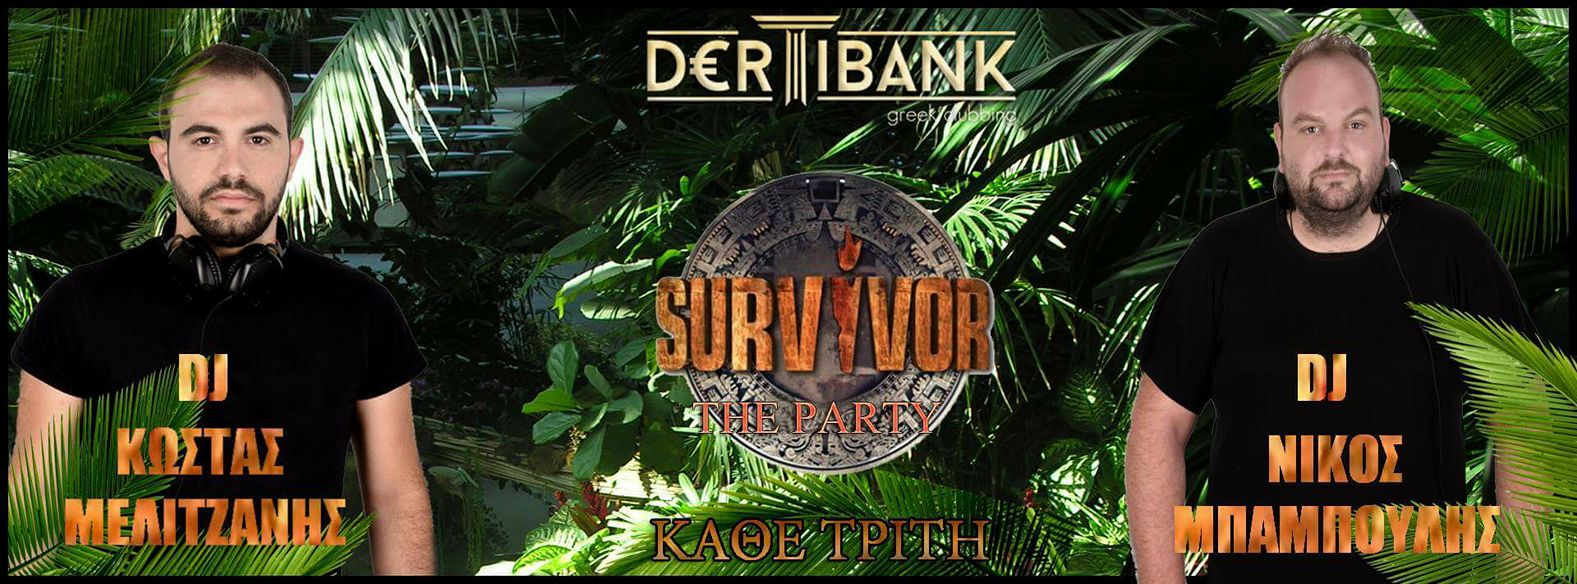 20121428 1385967368139276 8347724615735904842 o - Survivor the party στο Dertibank Greek Clubbing!